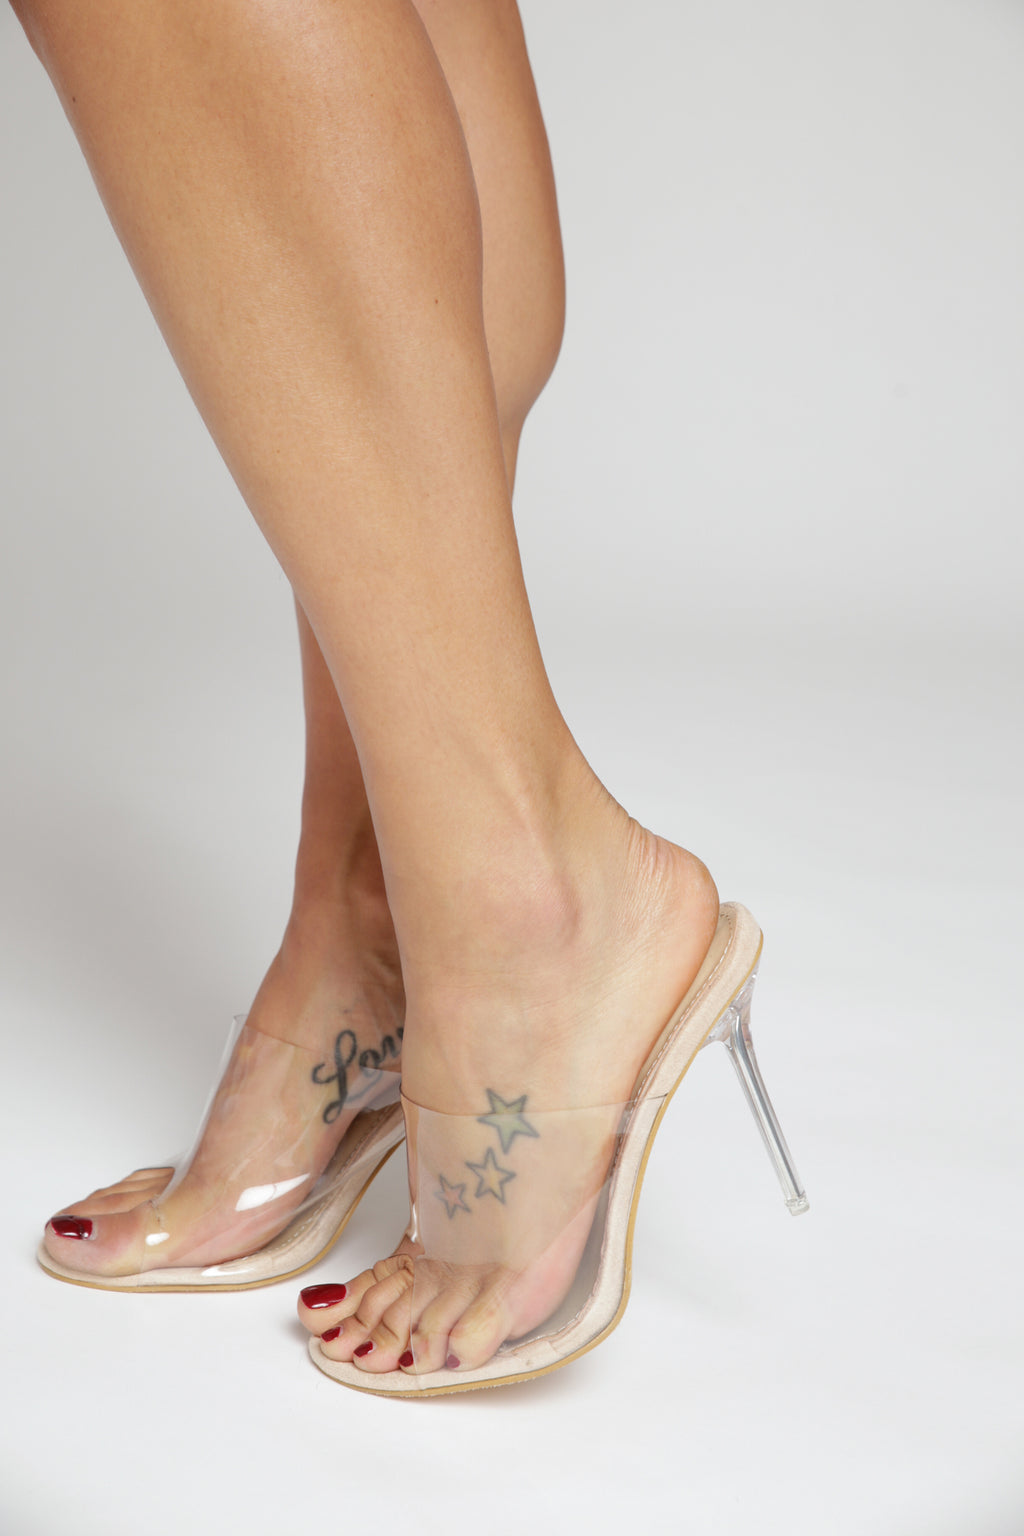 Cinderella Pumps